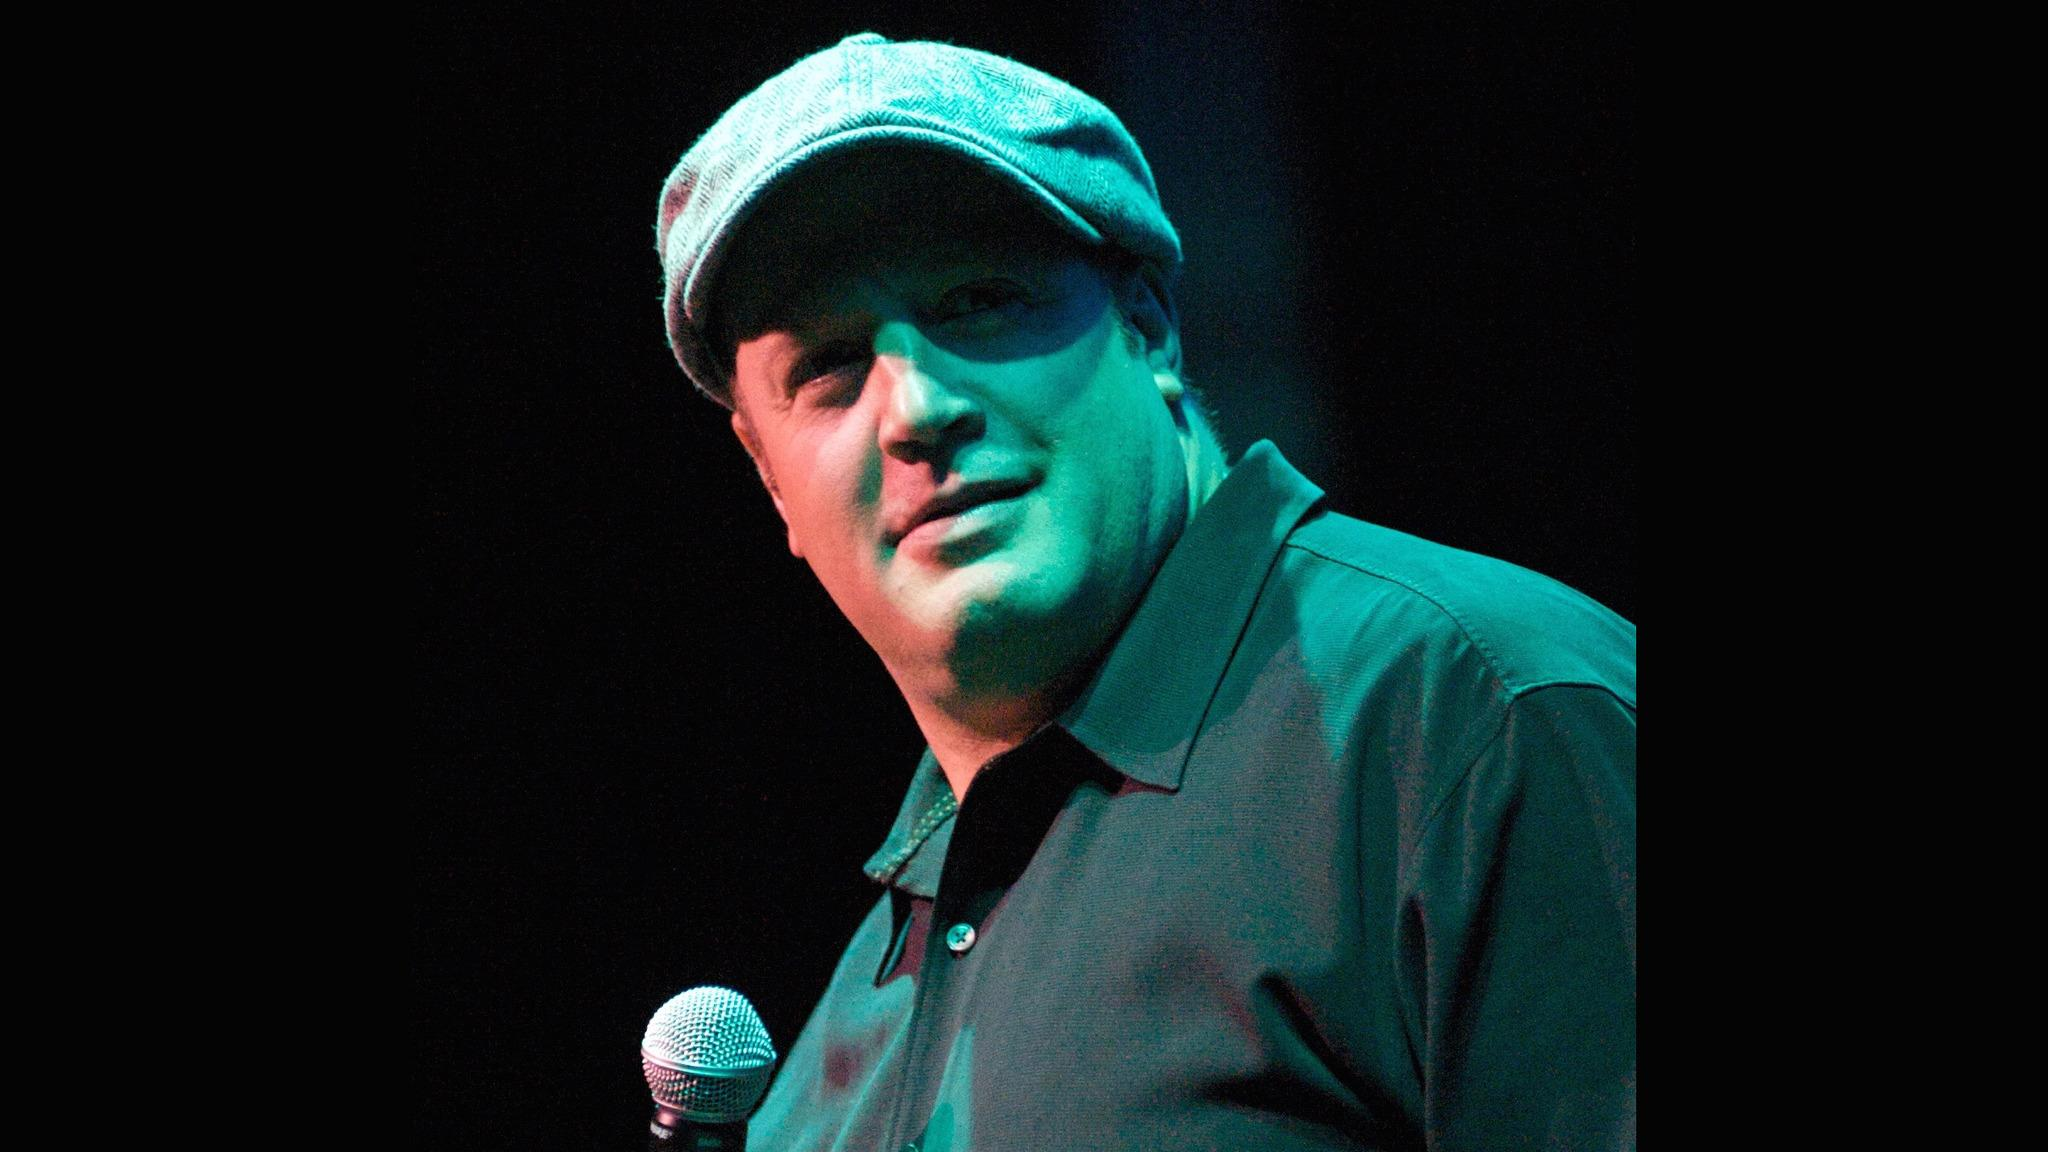 Kevin James at The Grand Theater at Foxwoods Resort Casino